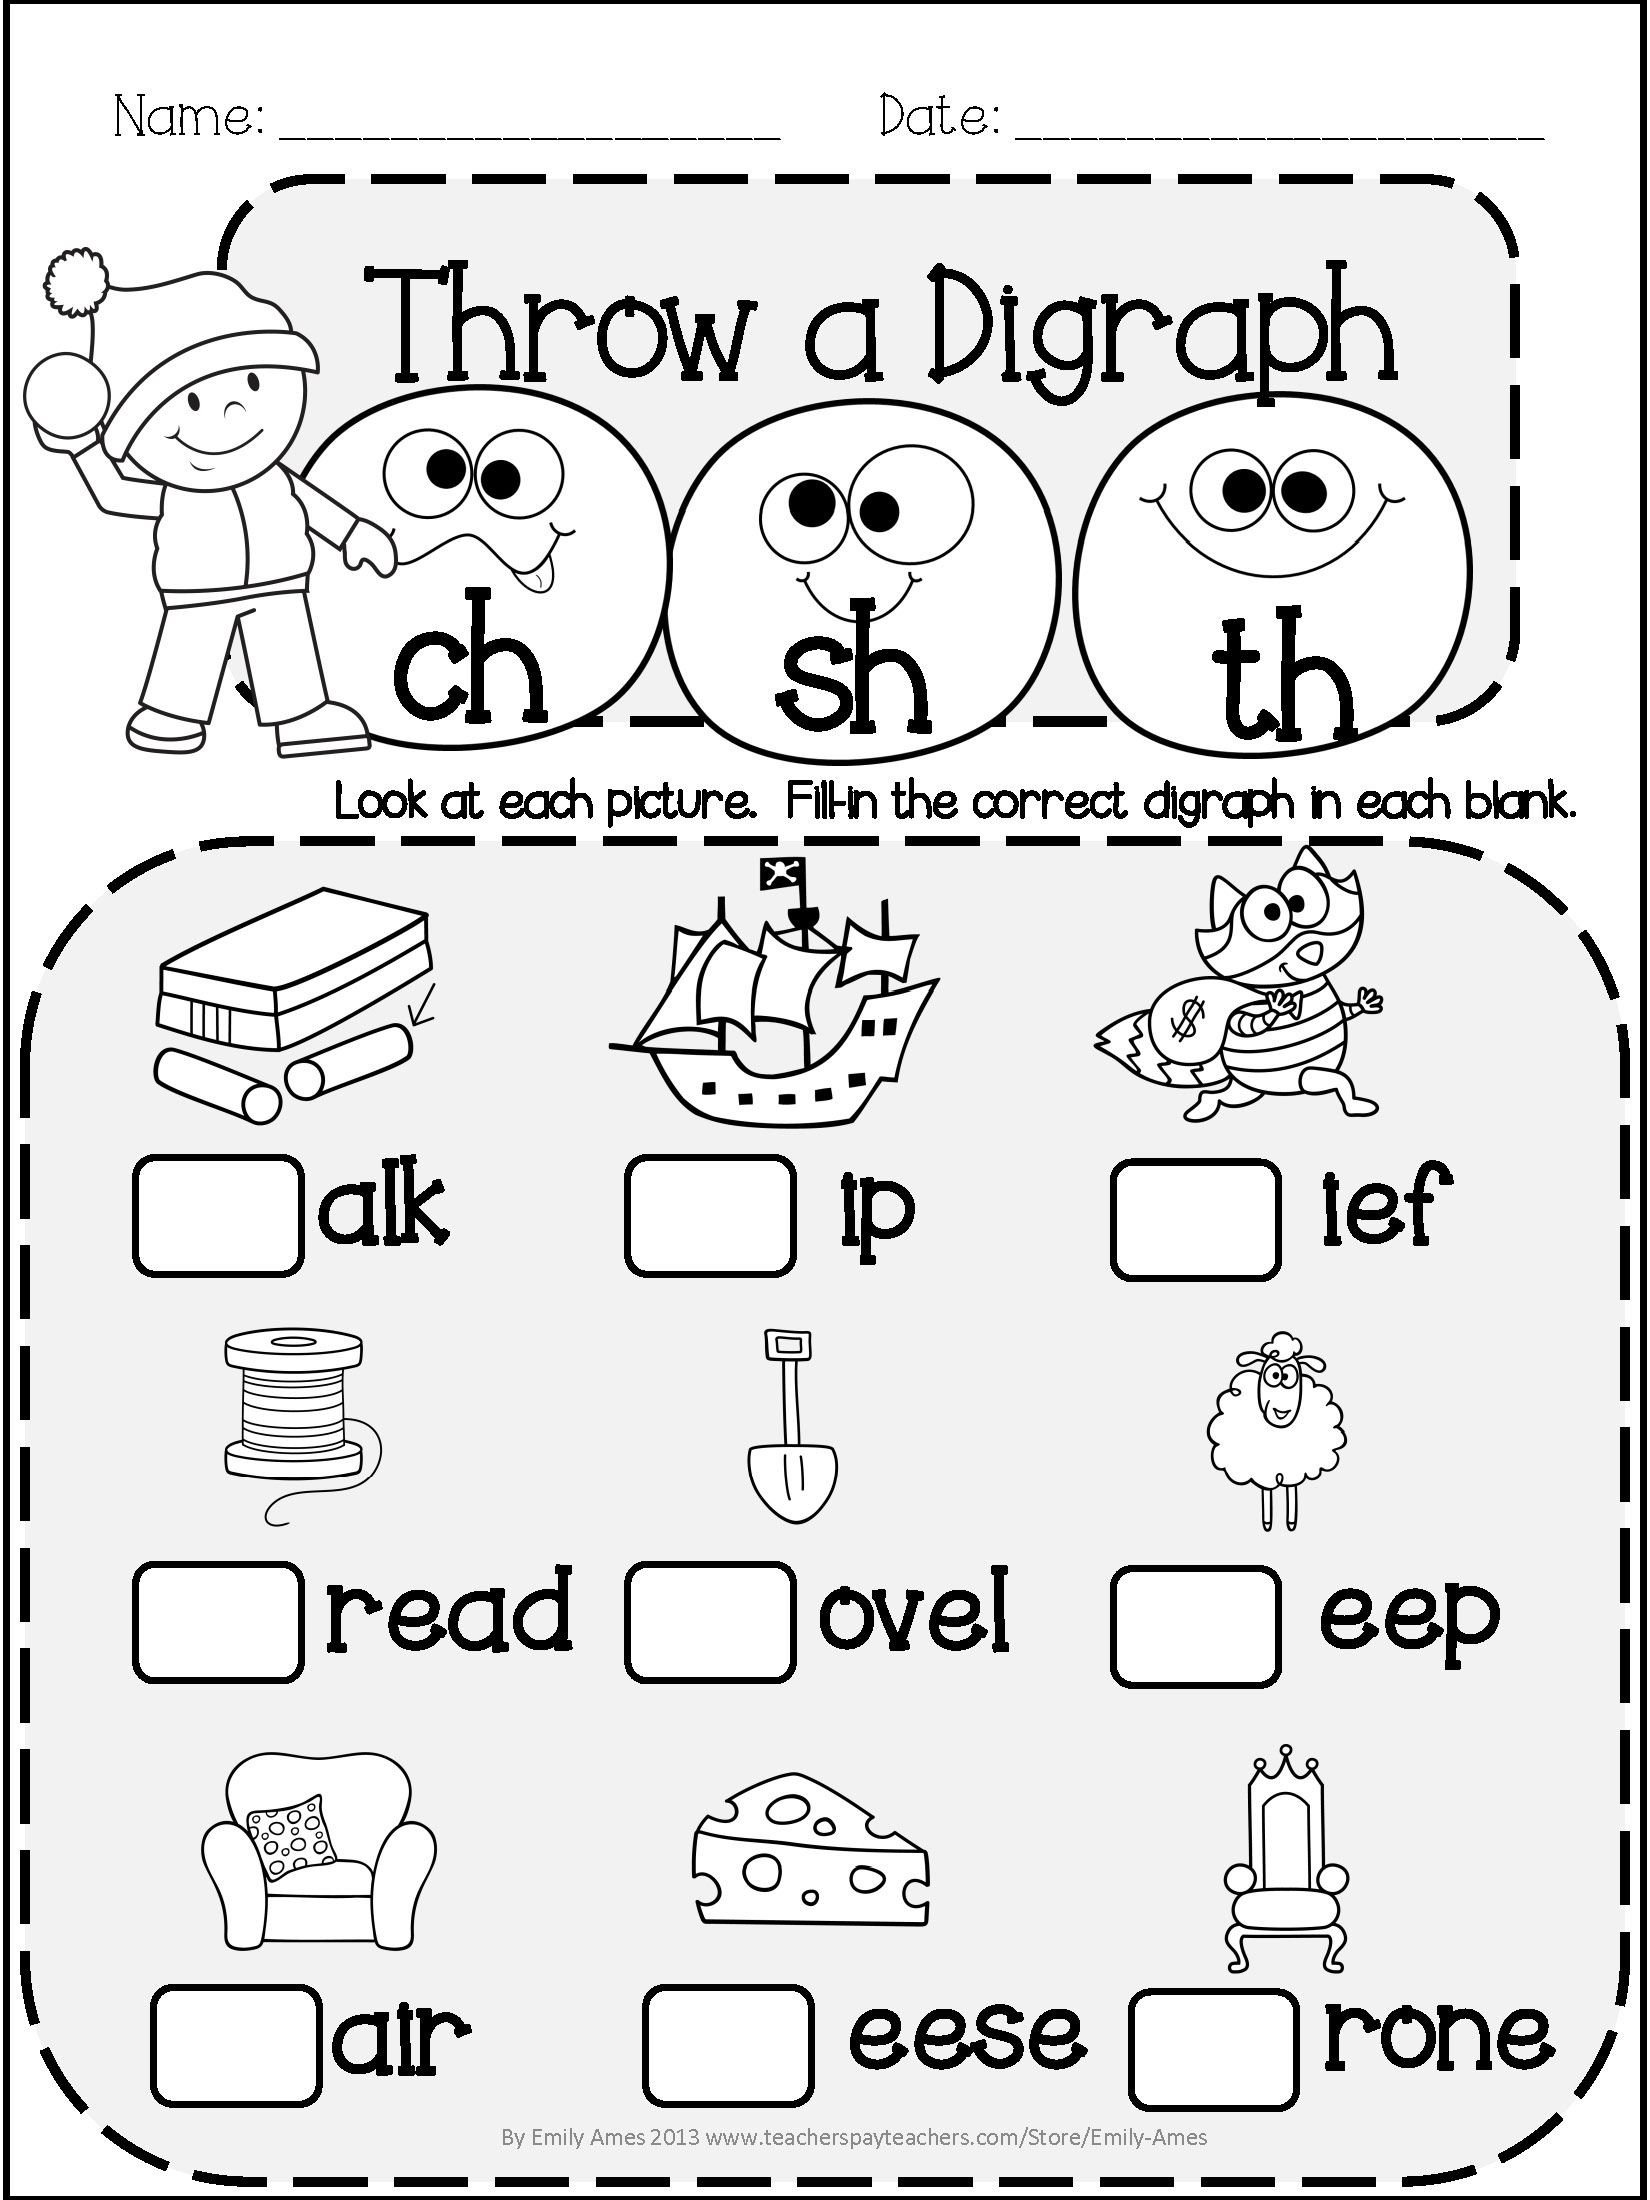 Wh Worksheets for Kindergarten Elegant Digraph Worksheet Educational Free Wh Worksheets for